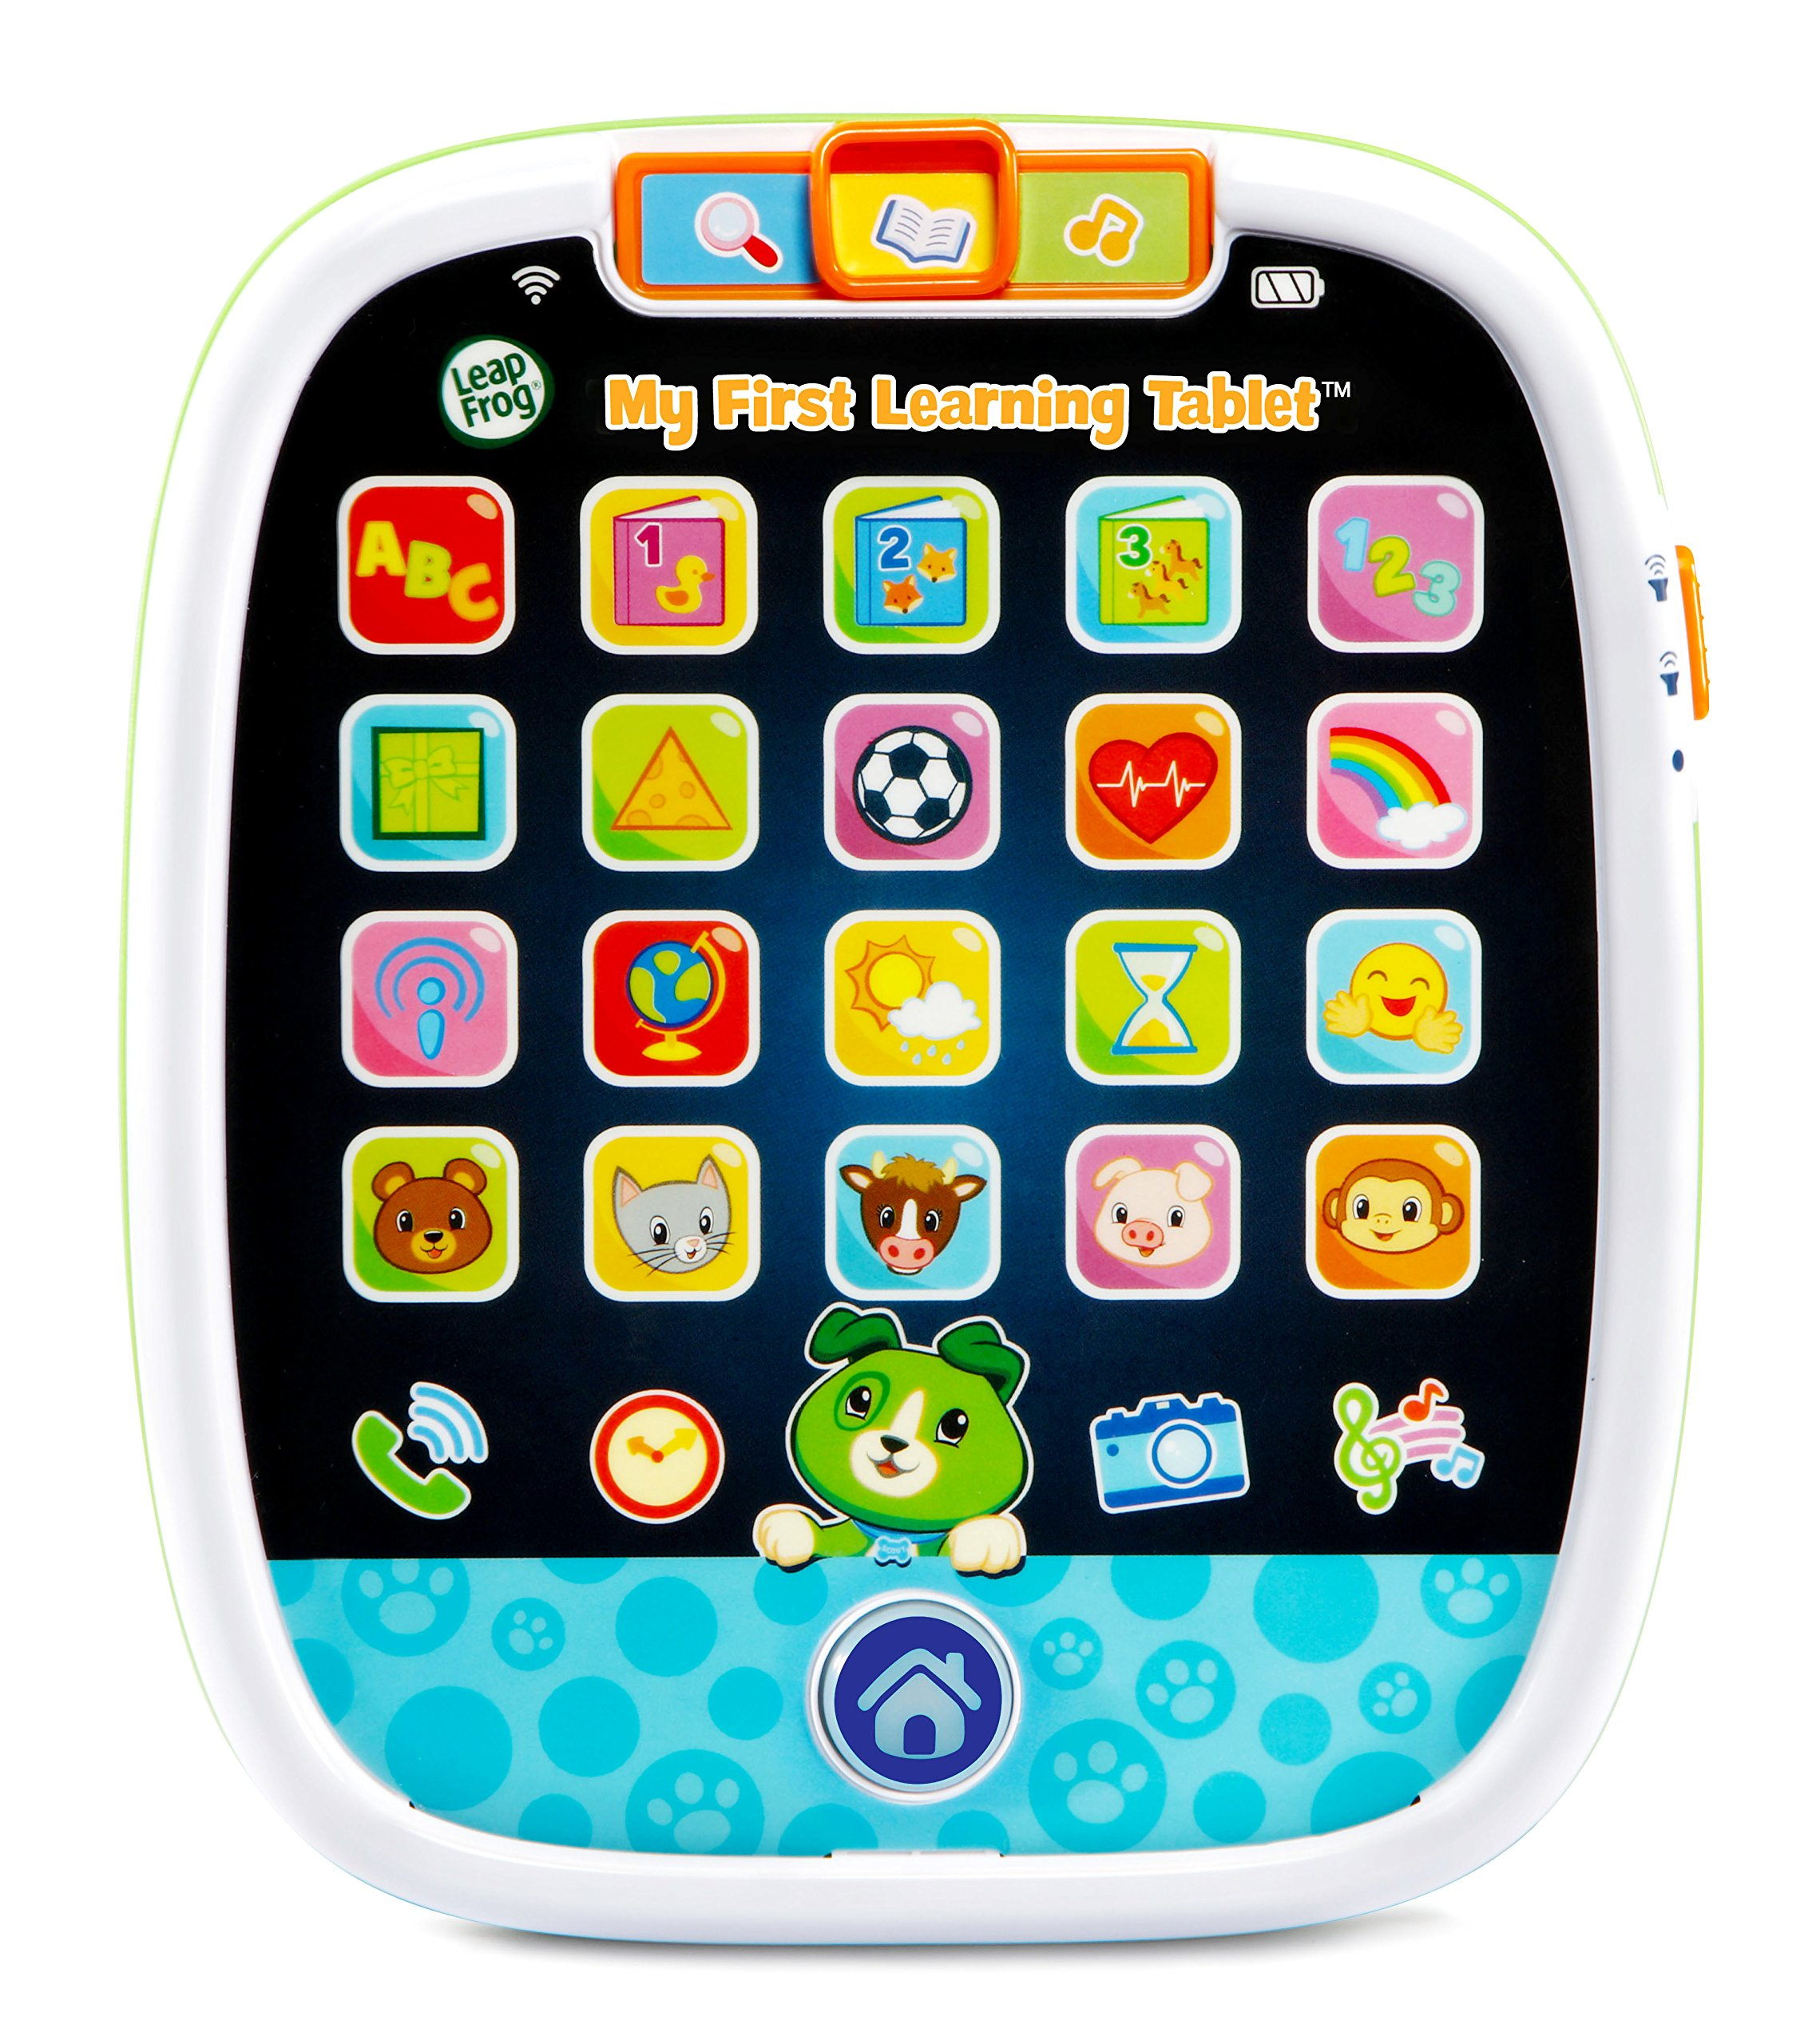 LeapFrog My First Learning Tablet, White and green by LeapFrog